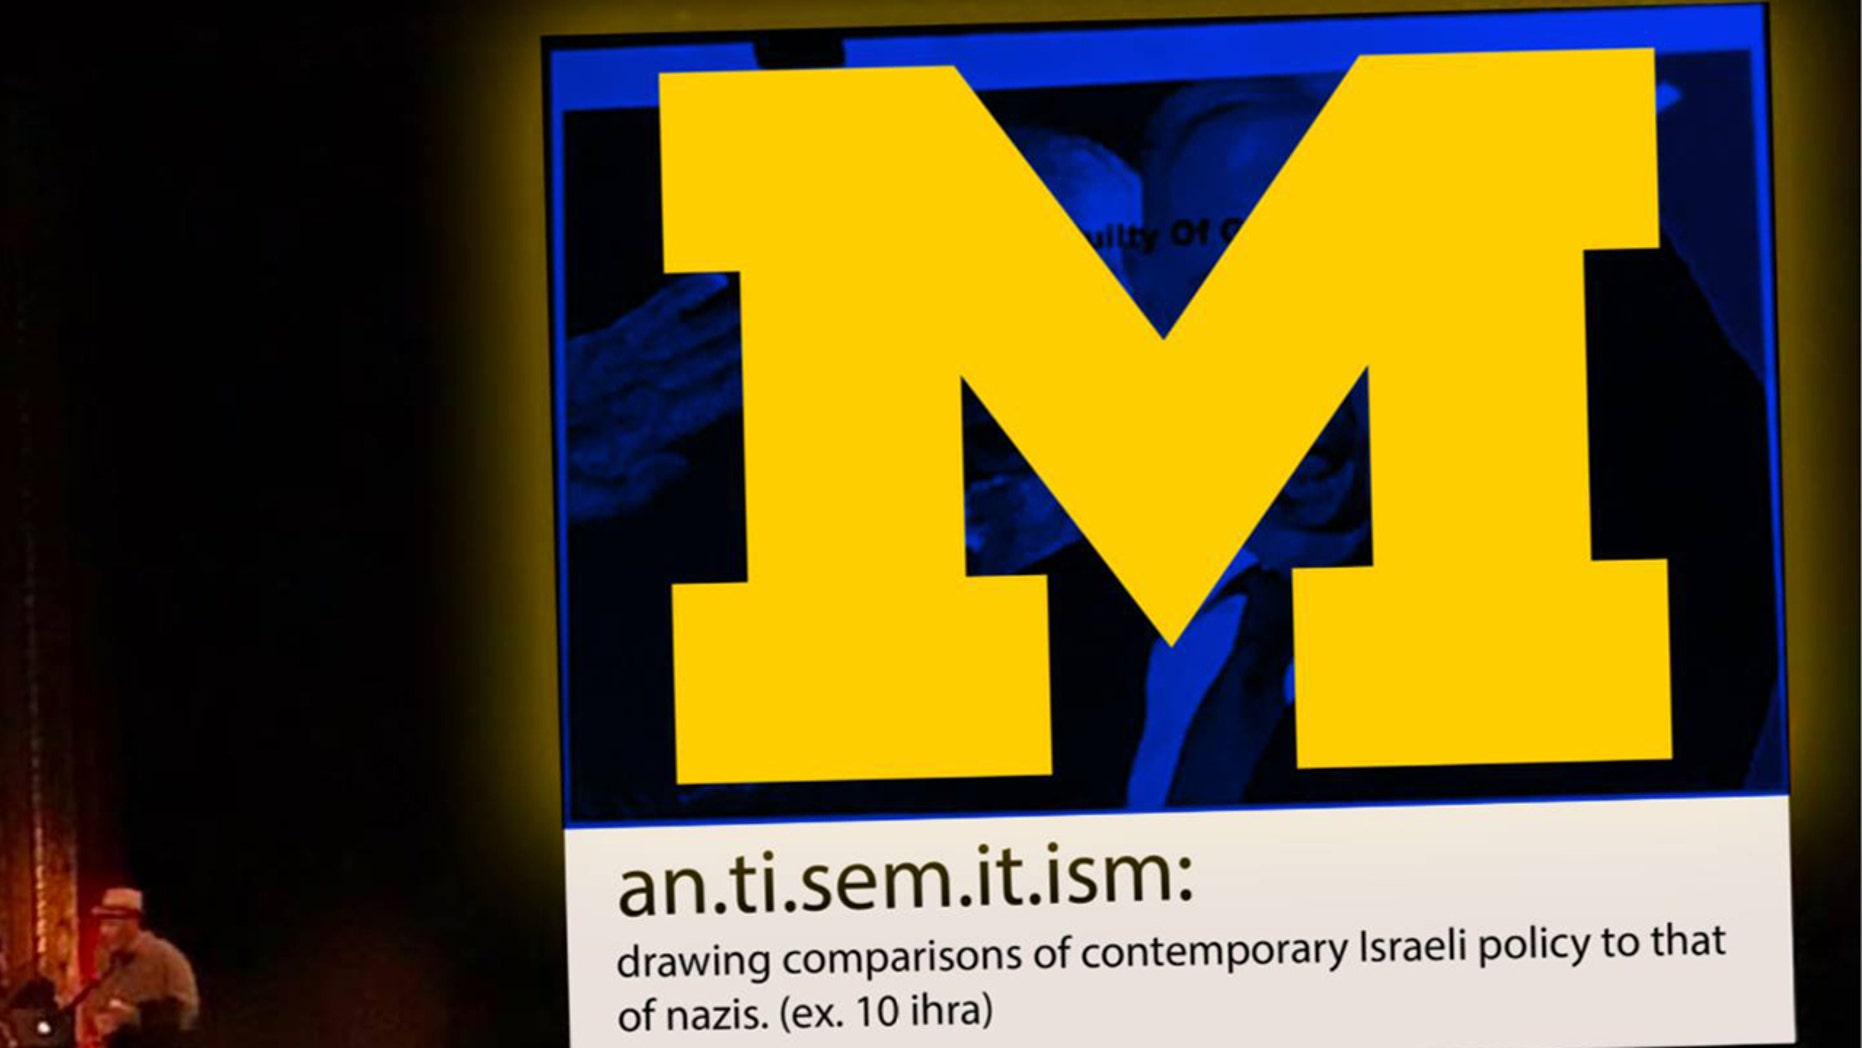 Alexa Smith, a student at the University of Michigan made the following graphic after having to sit through a mandatory art lecture that featured a slide comparing Israeli Prime Minister Benjamin Netanyahu to Adolf Hitler.